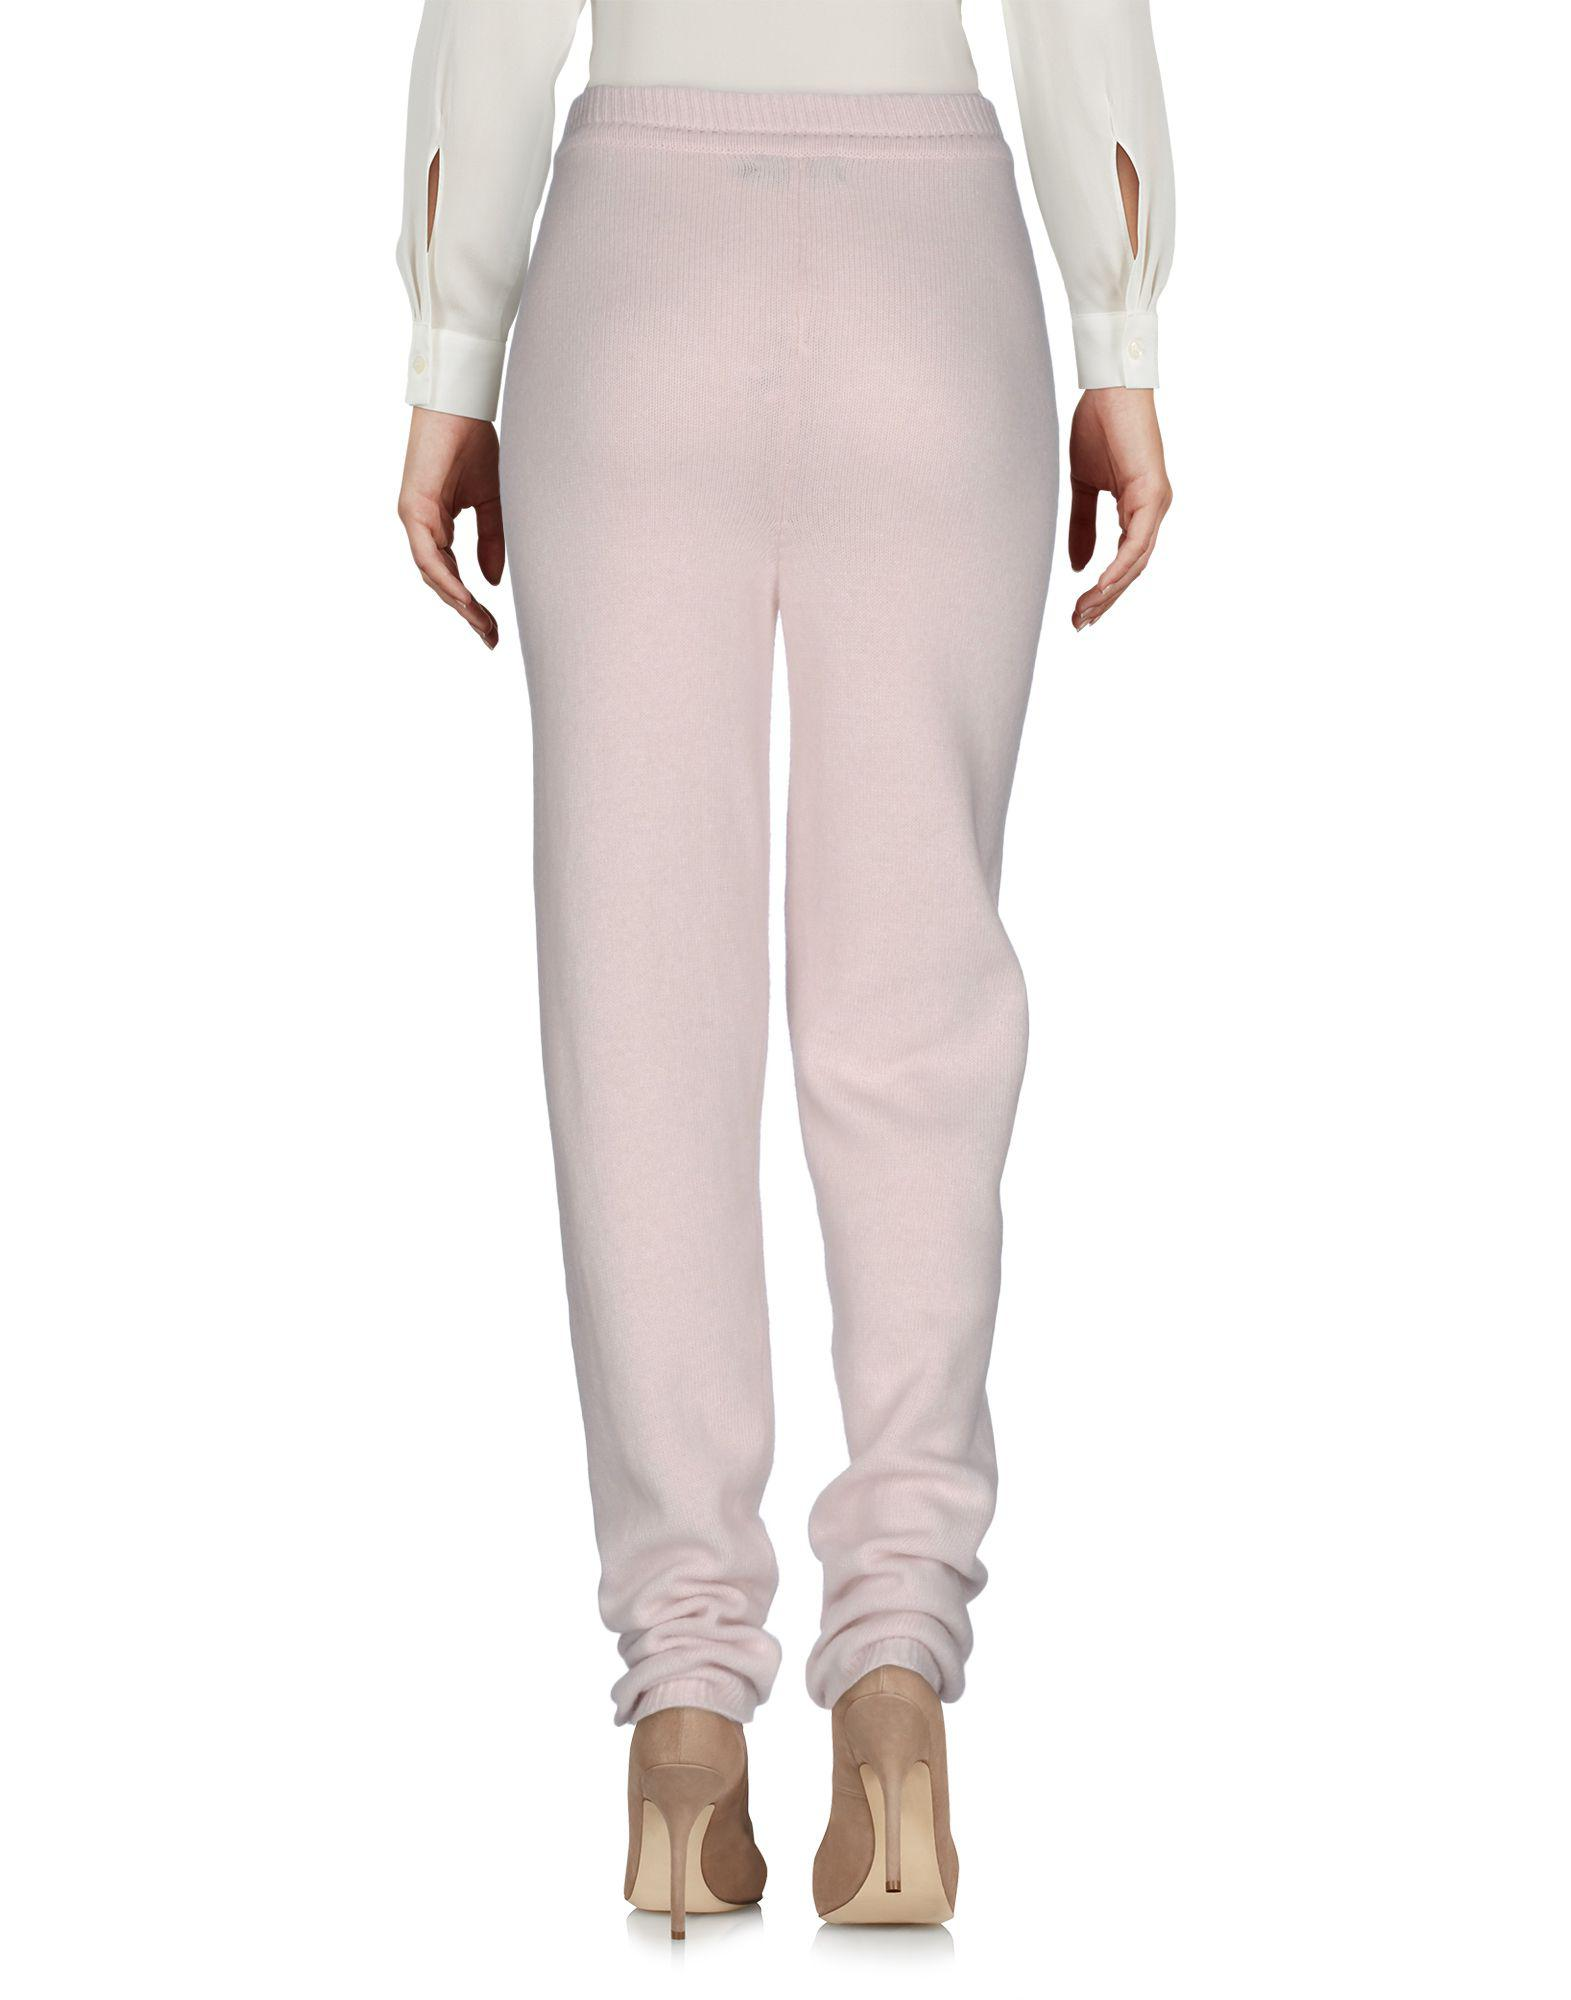 TROUSERS - Casual trousers Pierre Mantoux nSbff